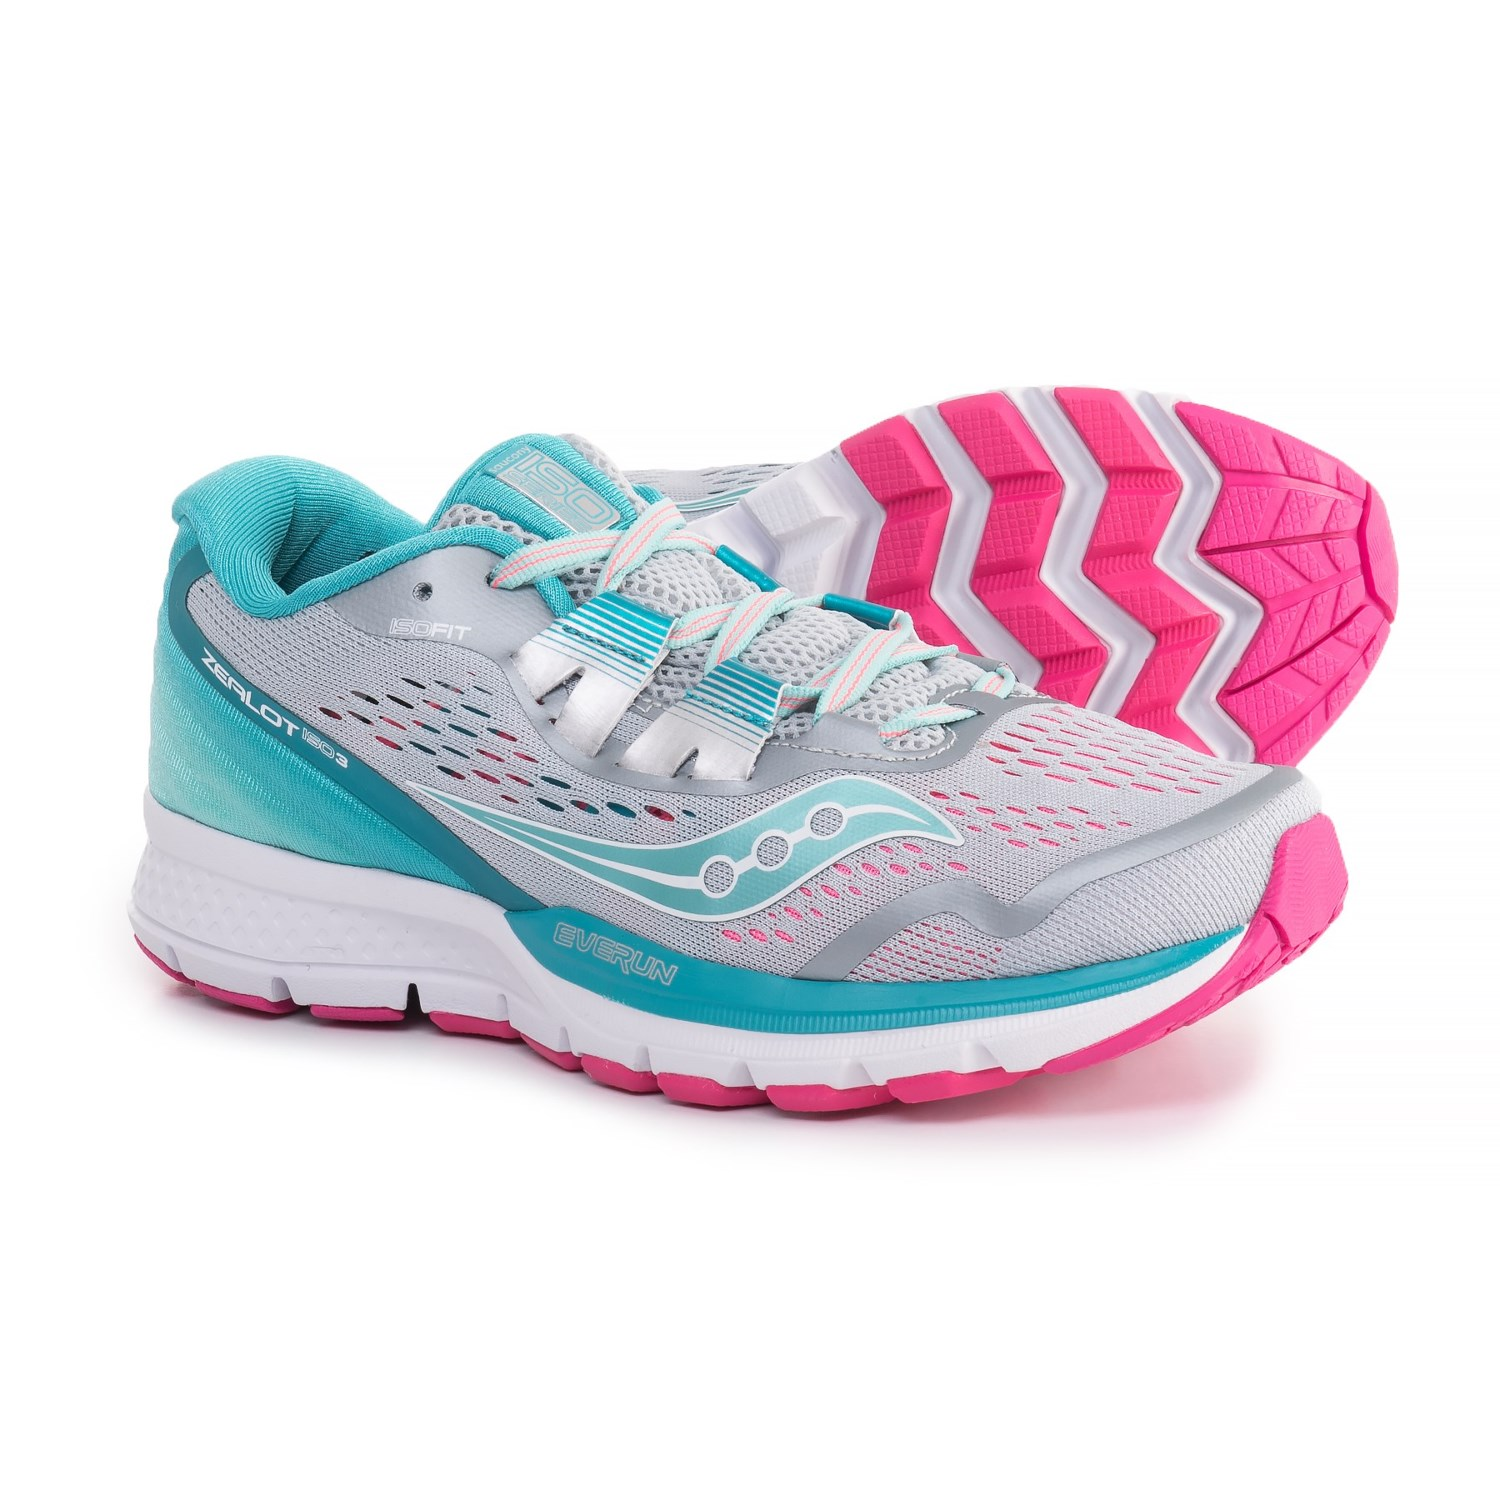 Saucony Zealot ISO 3 Running Shoes (For Women) in Grey Blue Pink a5b61c854